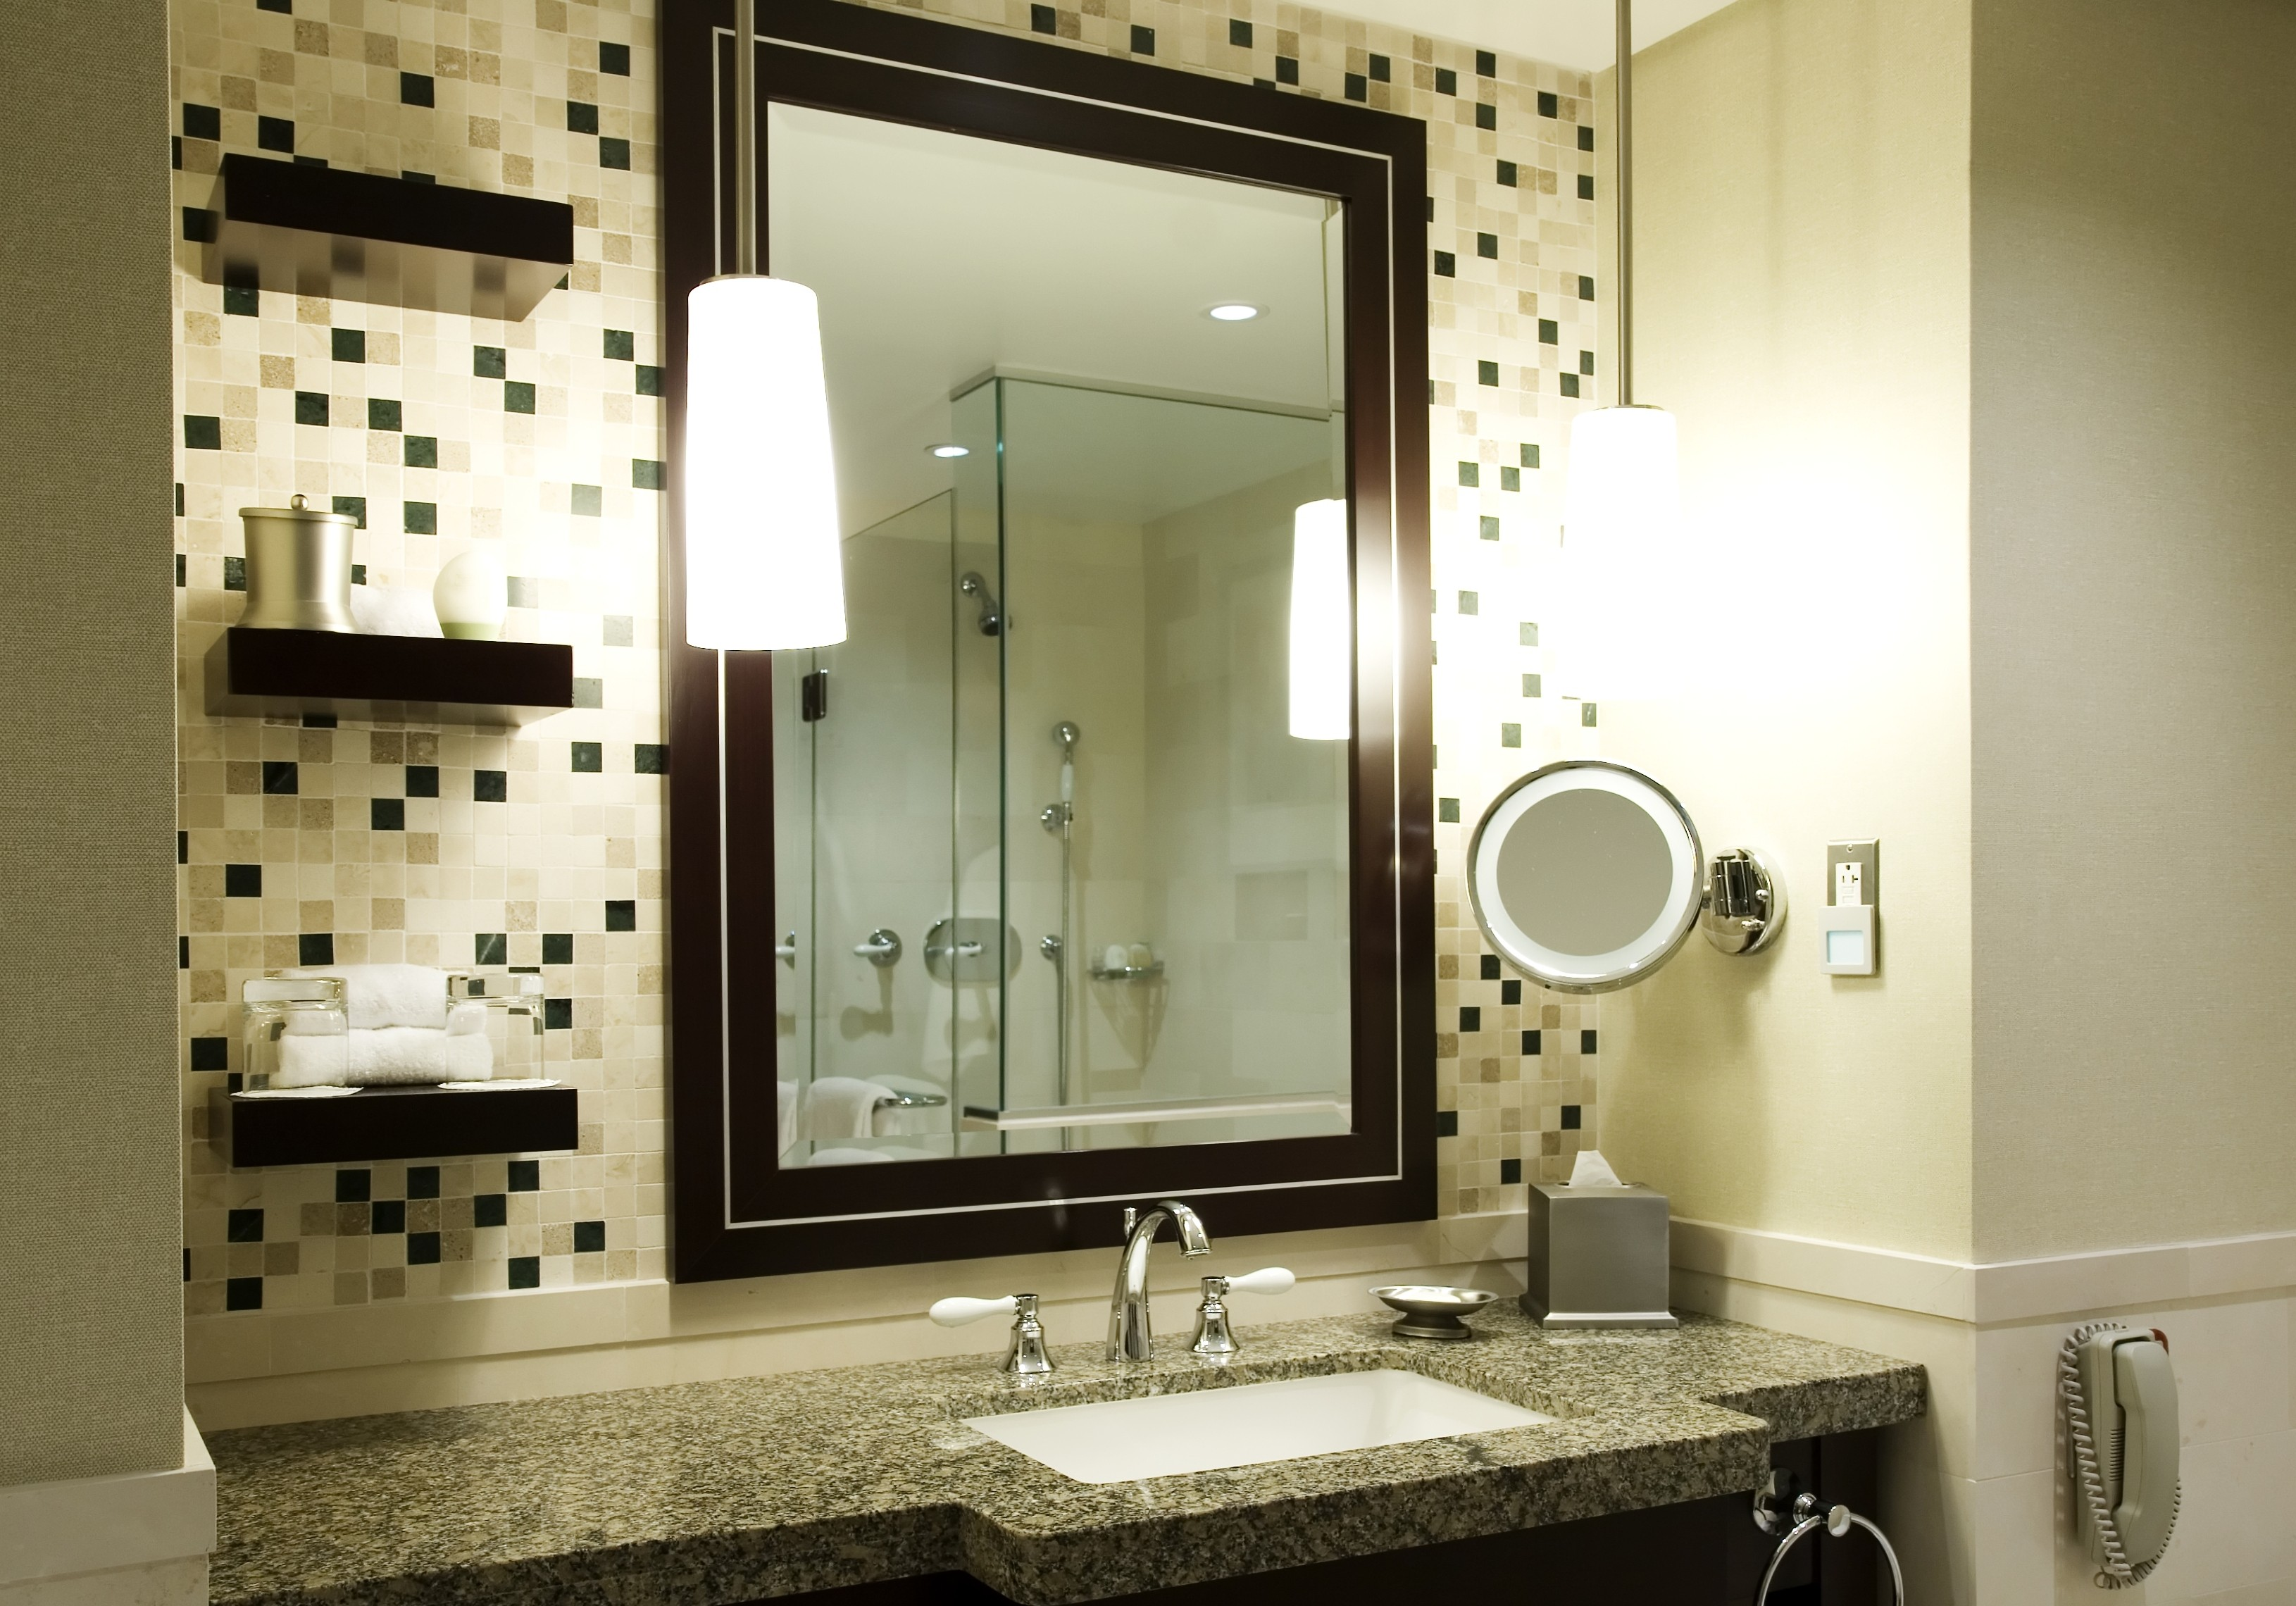 It Is Always A Great Idea To Use Virtual Designing Tools Like Visualizer+  2D And 360° On Marble.com Or Virtual Rooms On HouseTipster.com To See The  ...